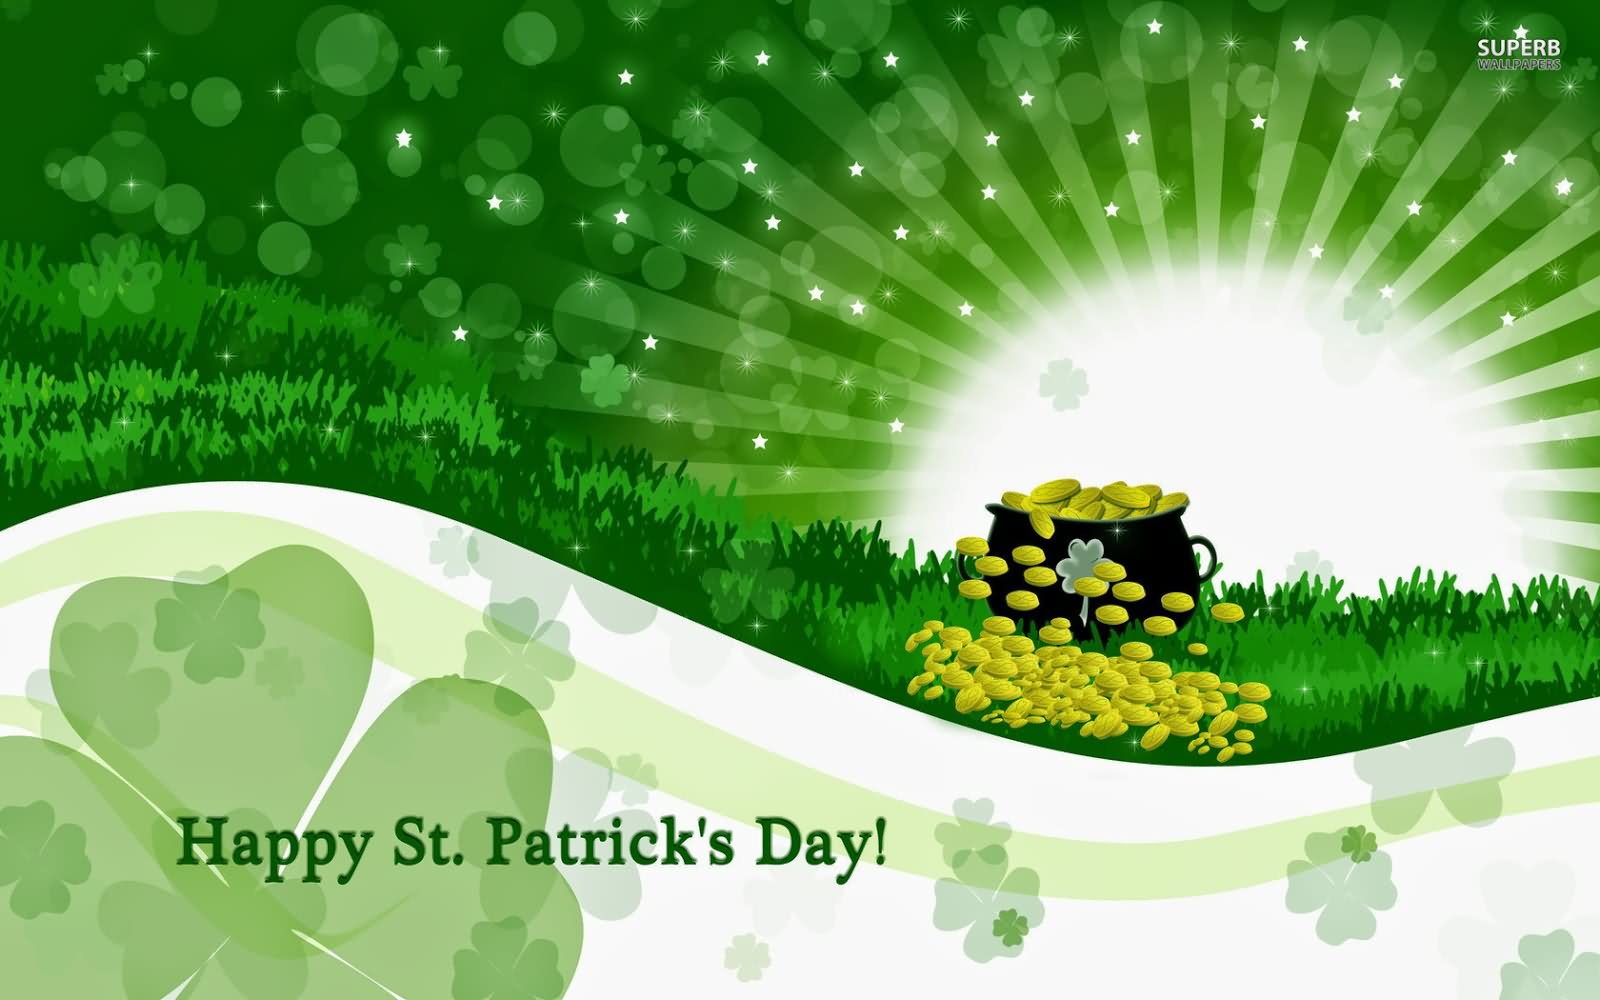 92-Saint Patricks Day Wishes